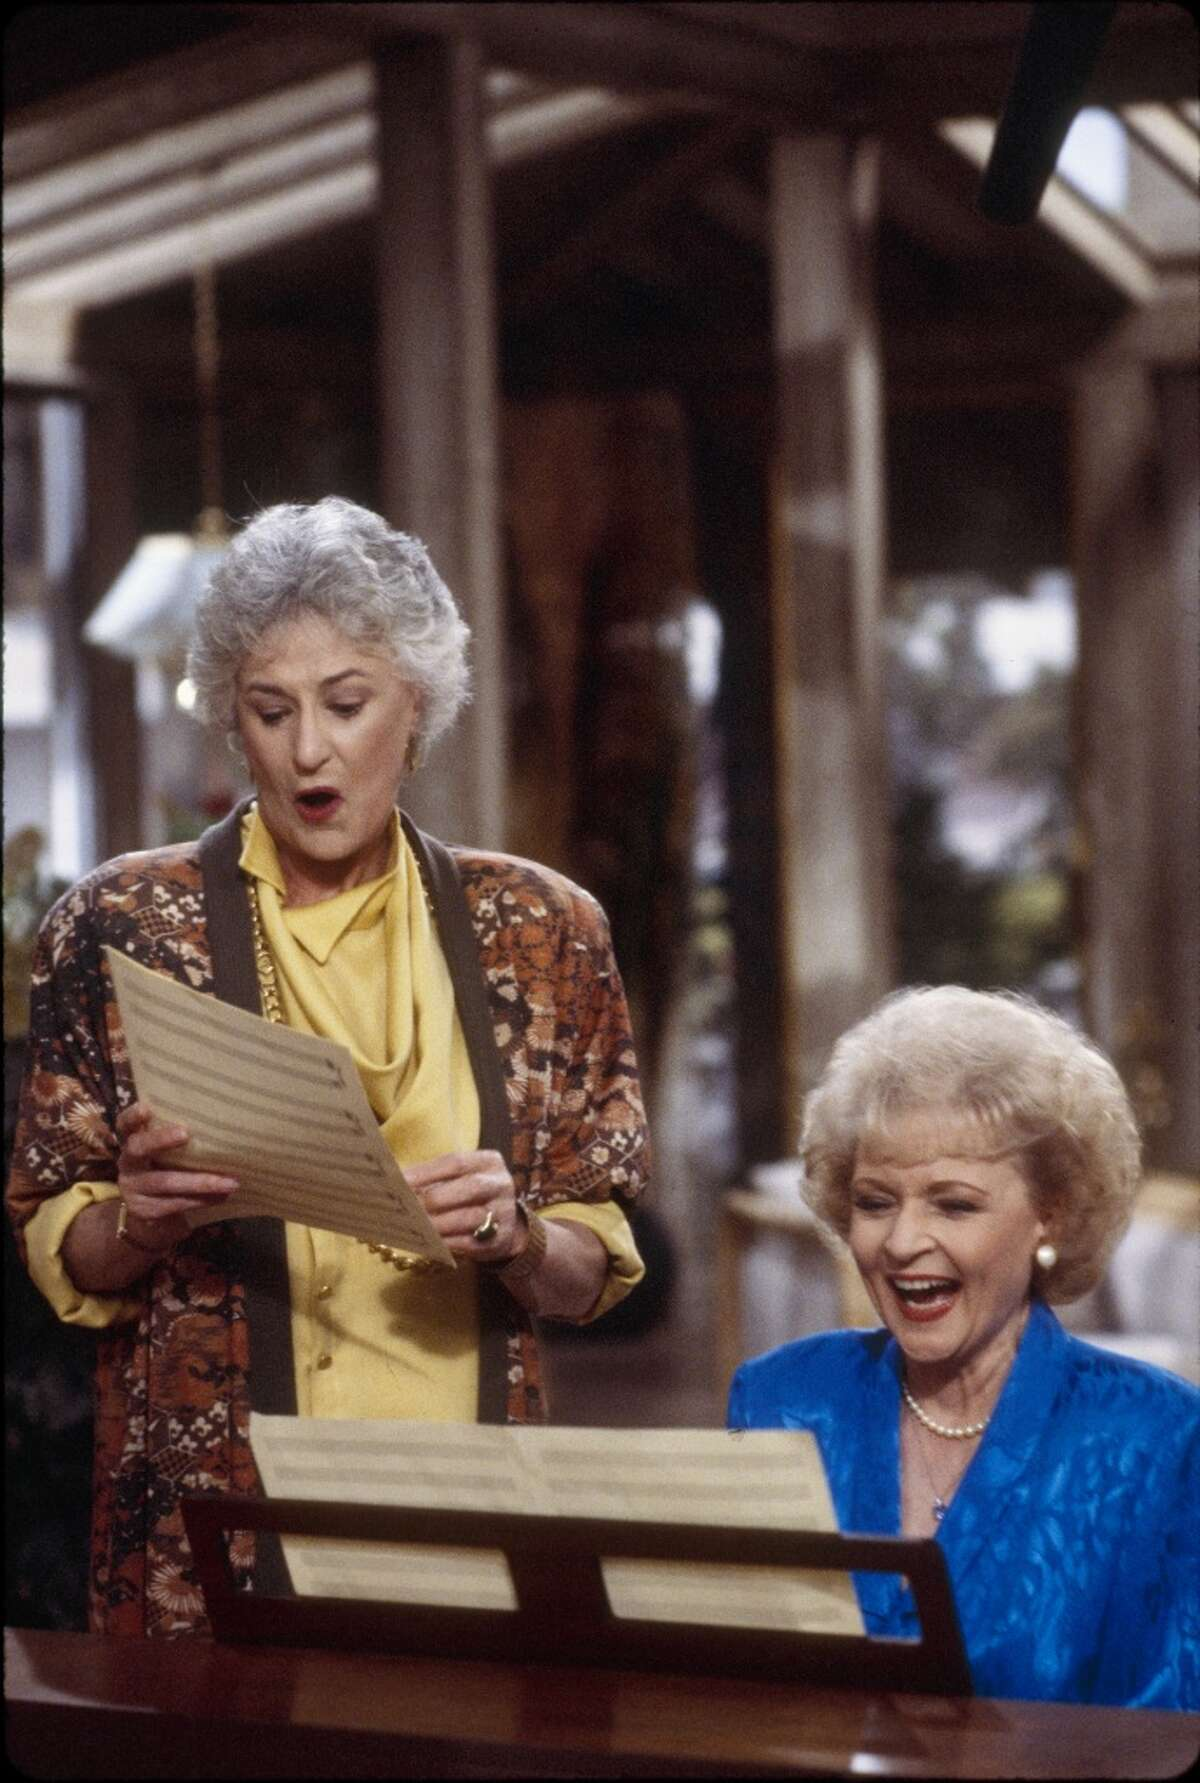 Bea Arthur Before she was a Golden Girl, Arthur (left) joined up in 1943 and served as a truck driver for the Marines. Keep clicking for more celebs who served in the military